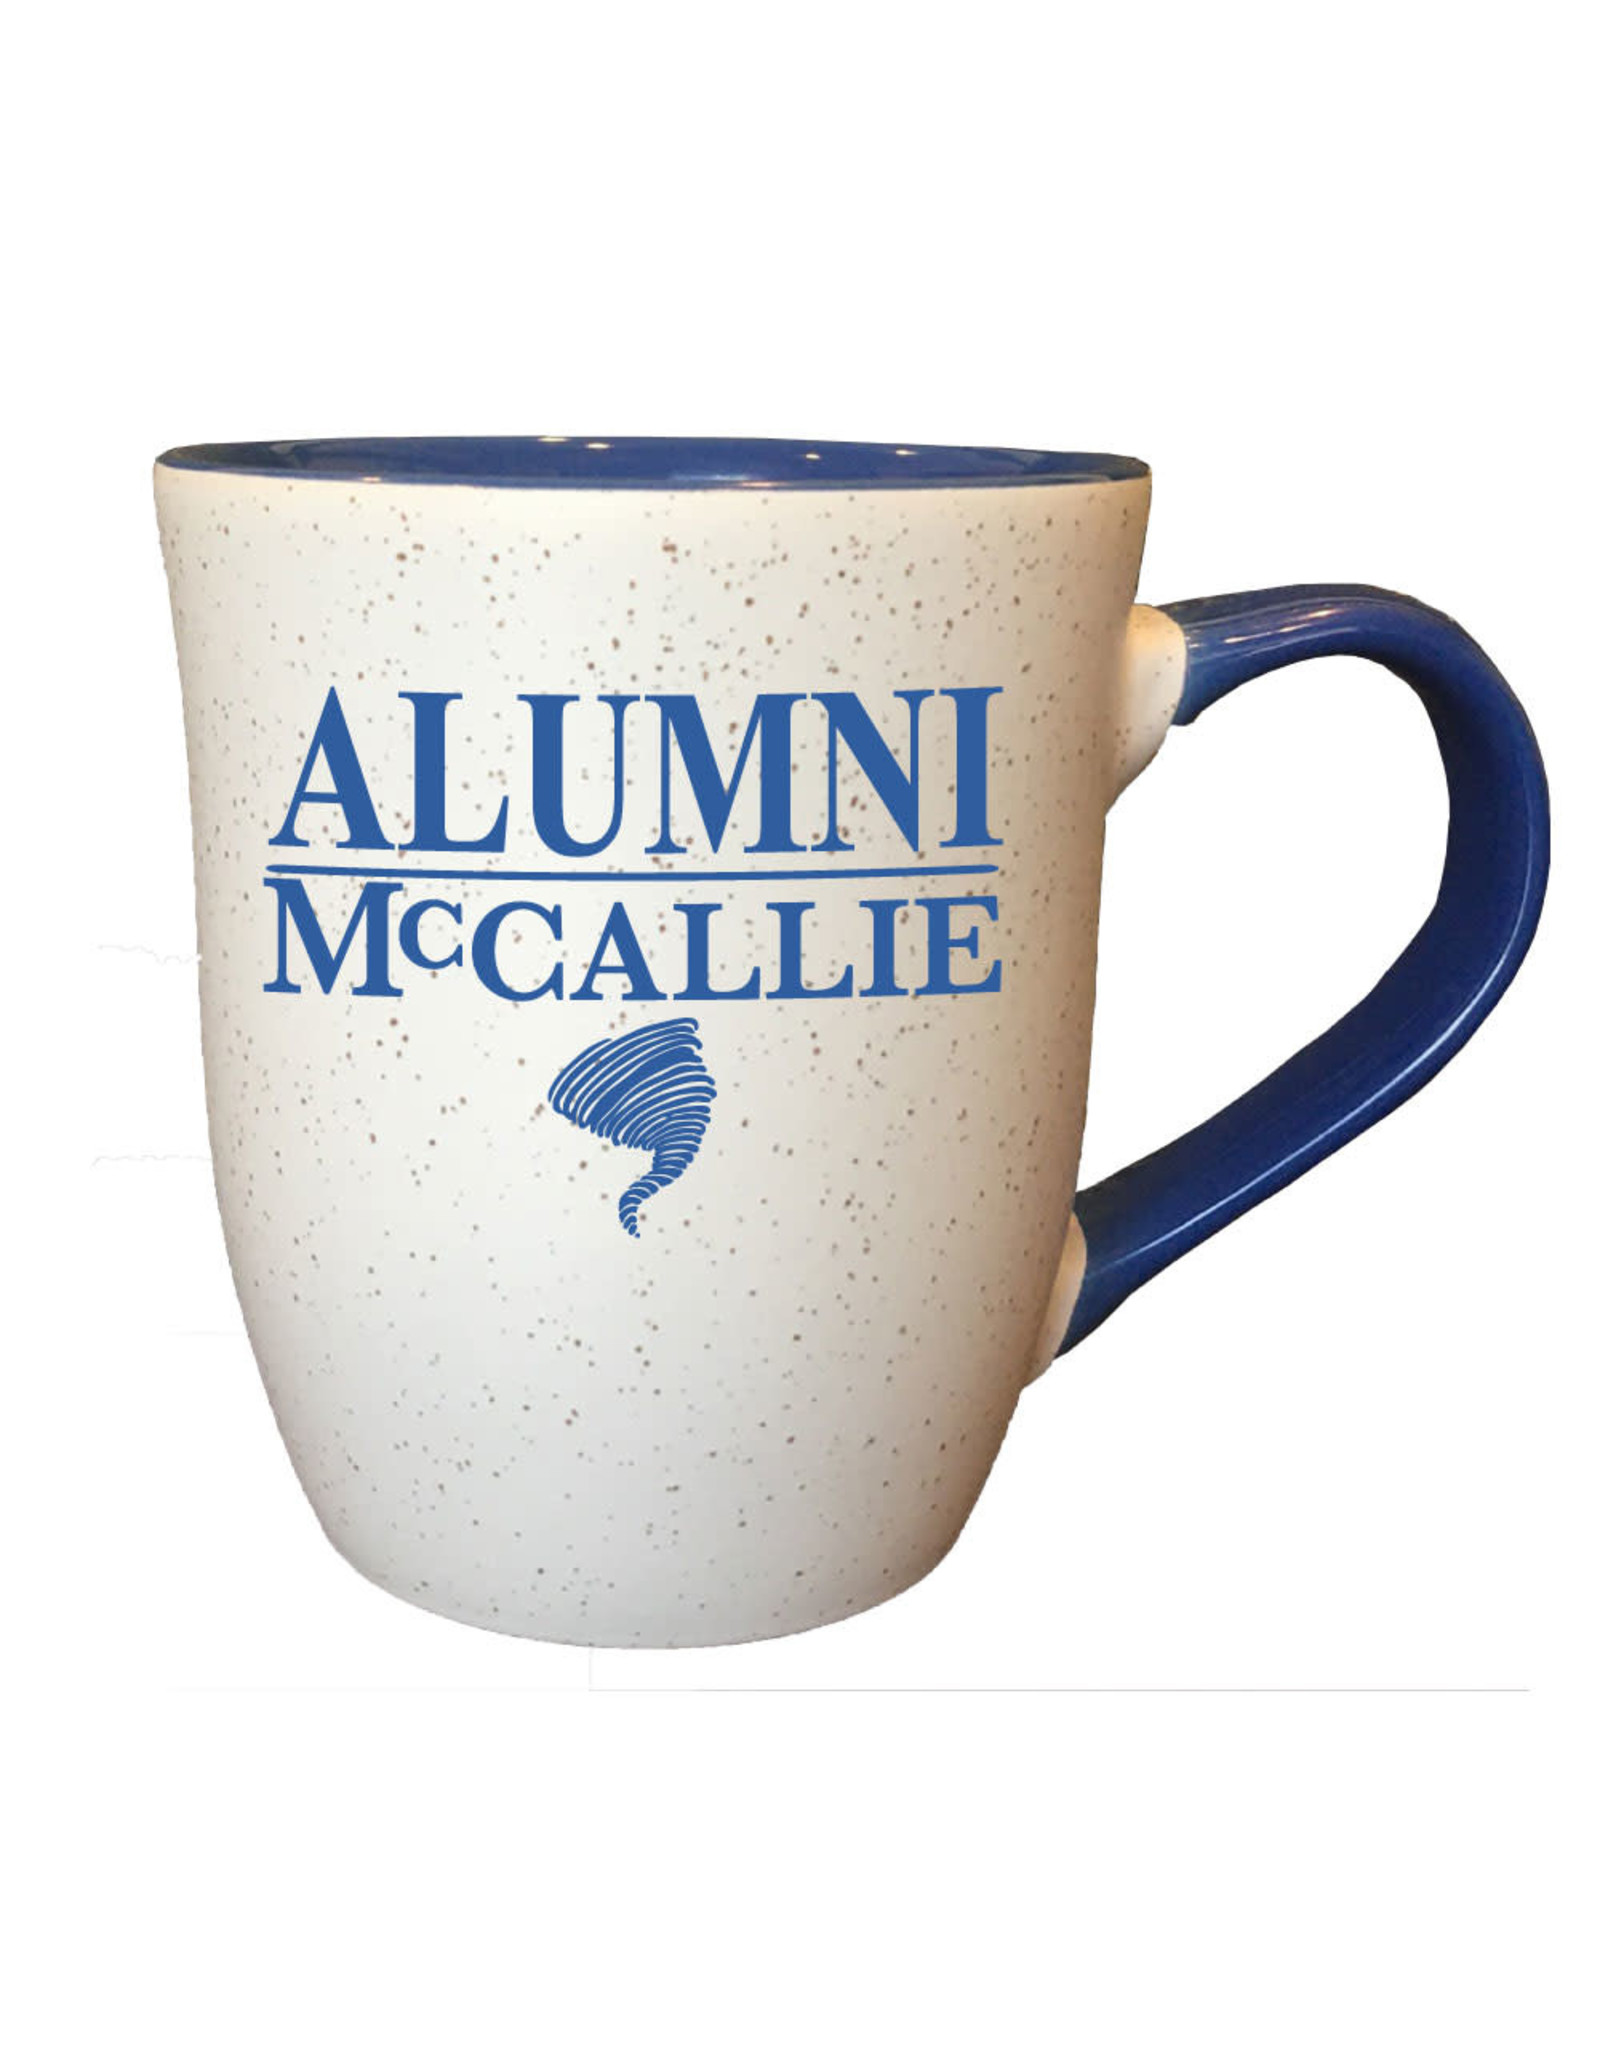 MCCALLIE ALUMNI MUG